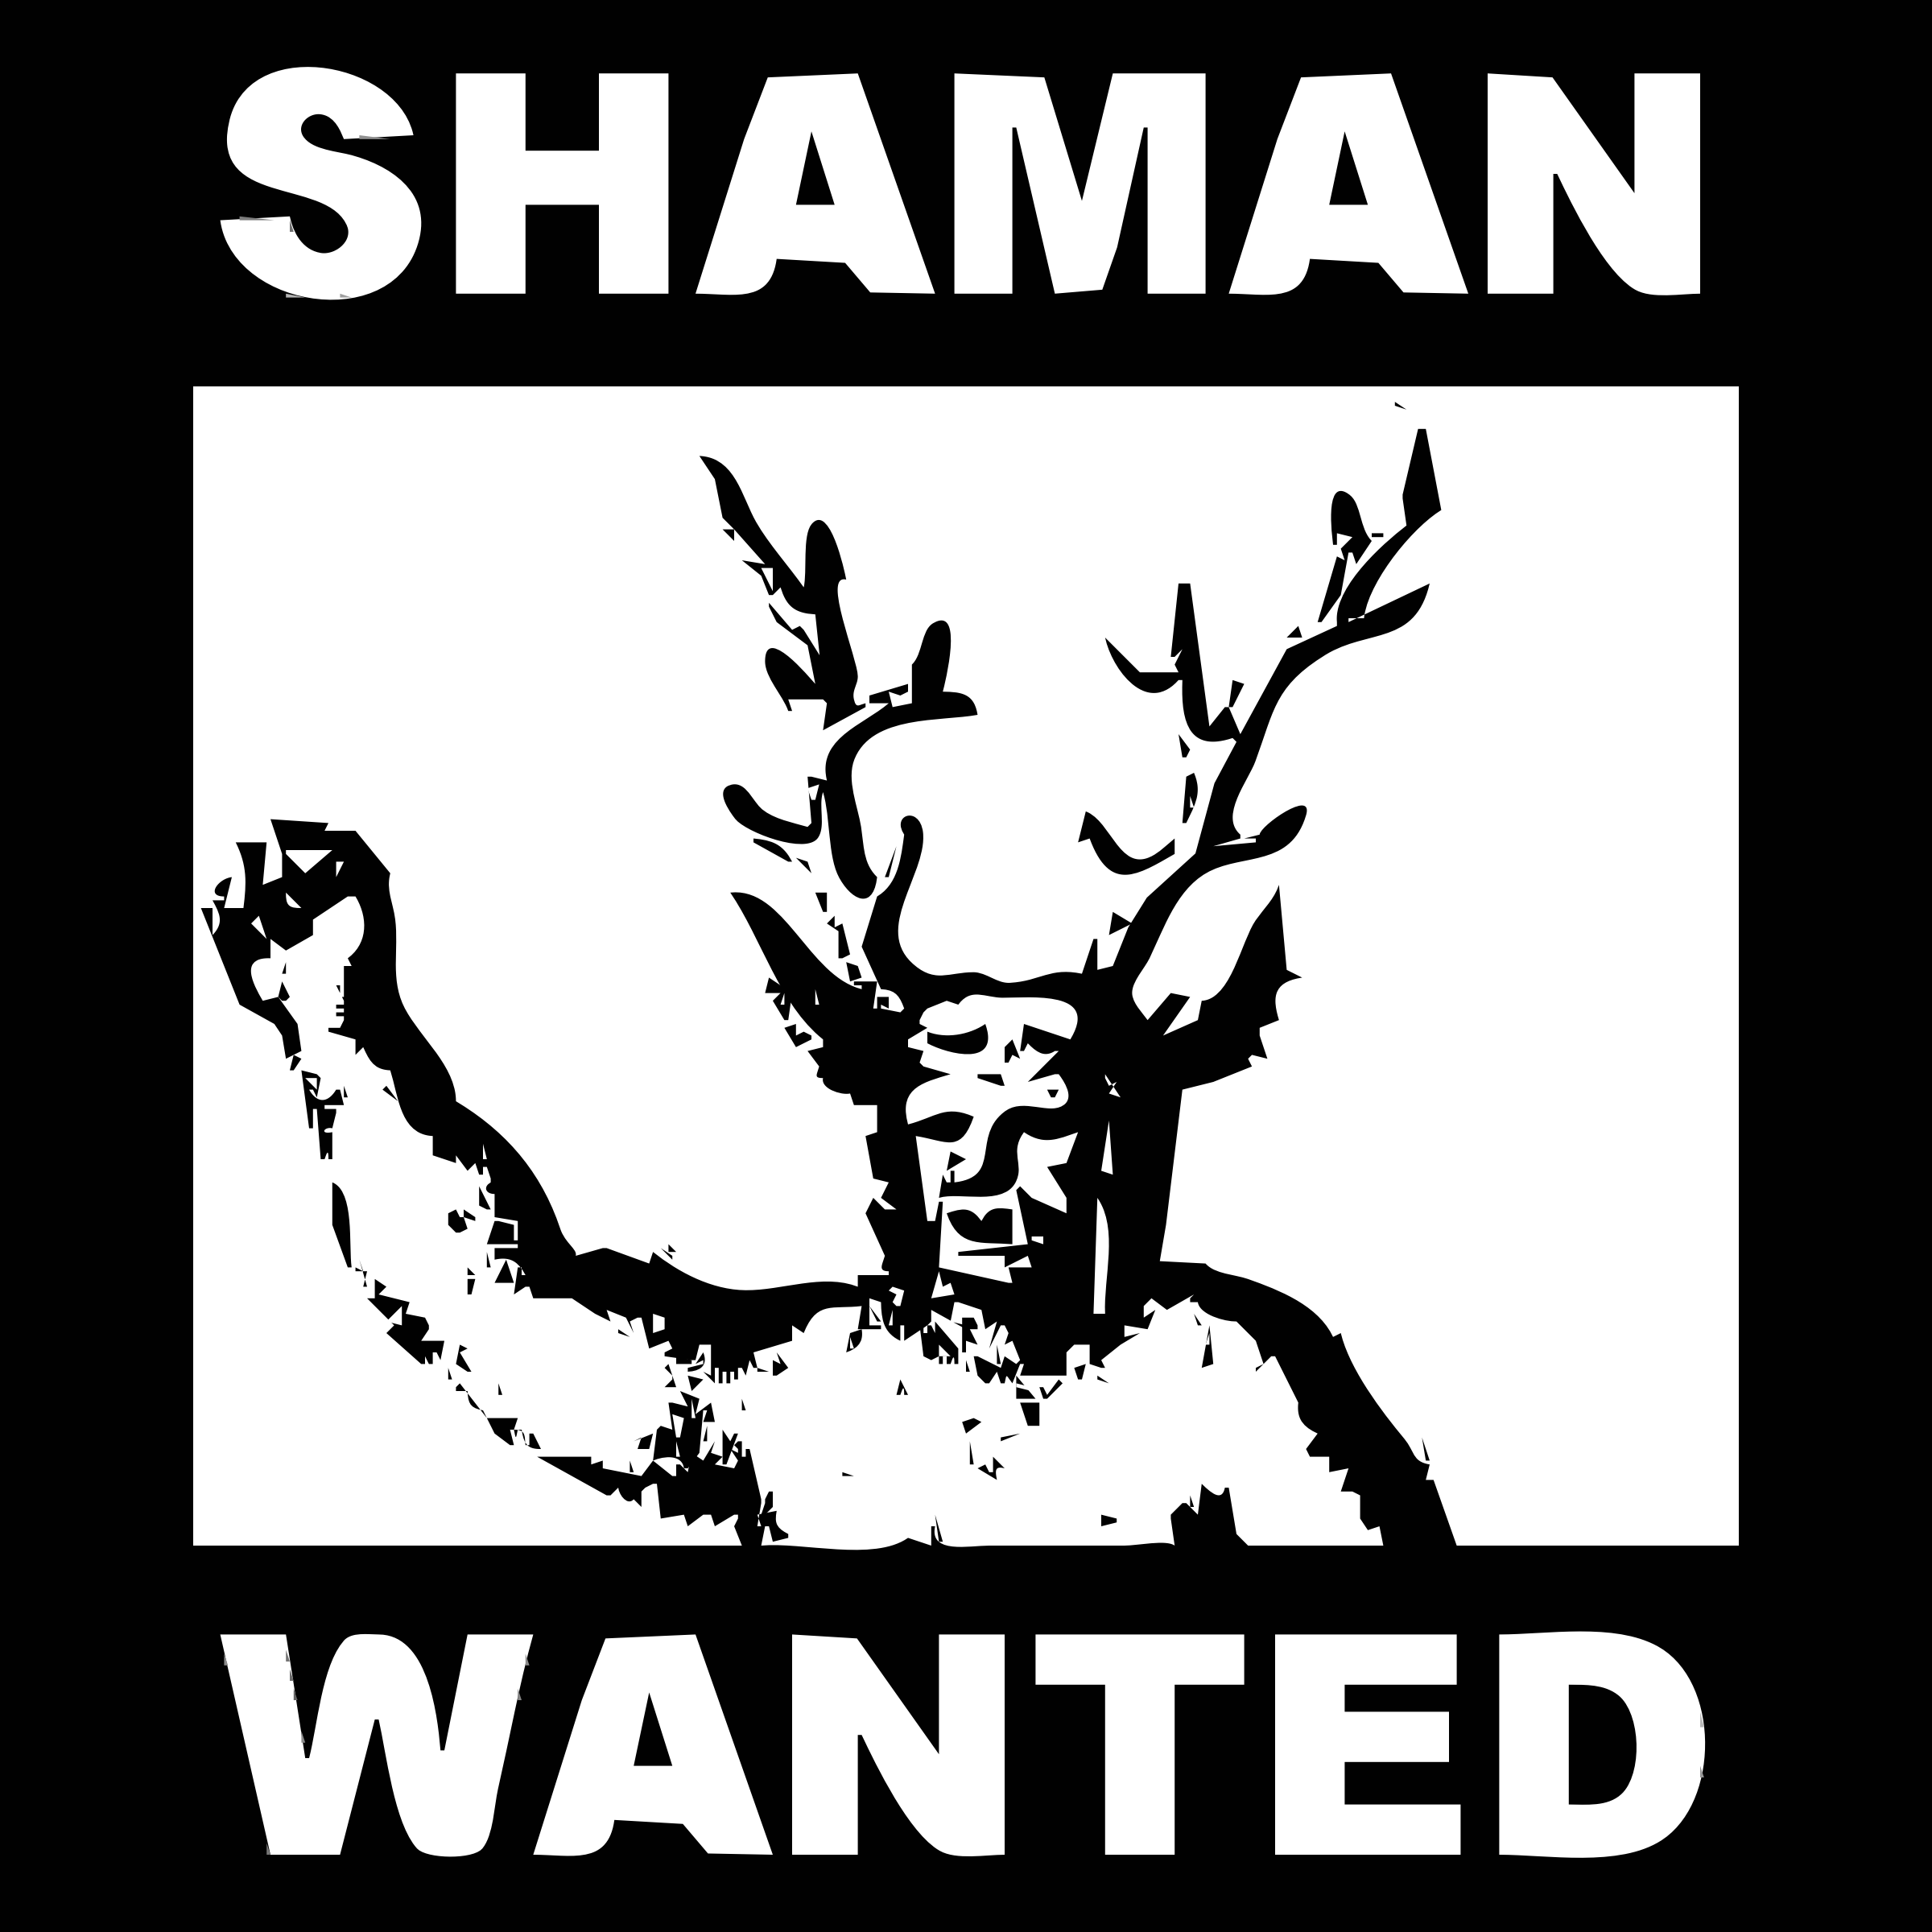 [request] Character 11 - SHAMAN by speedstar